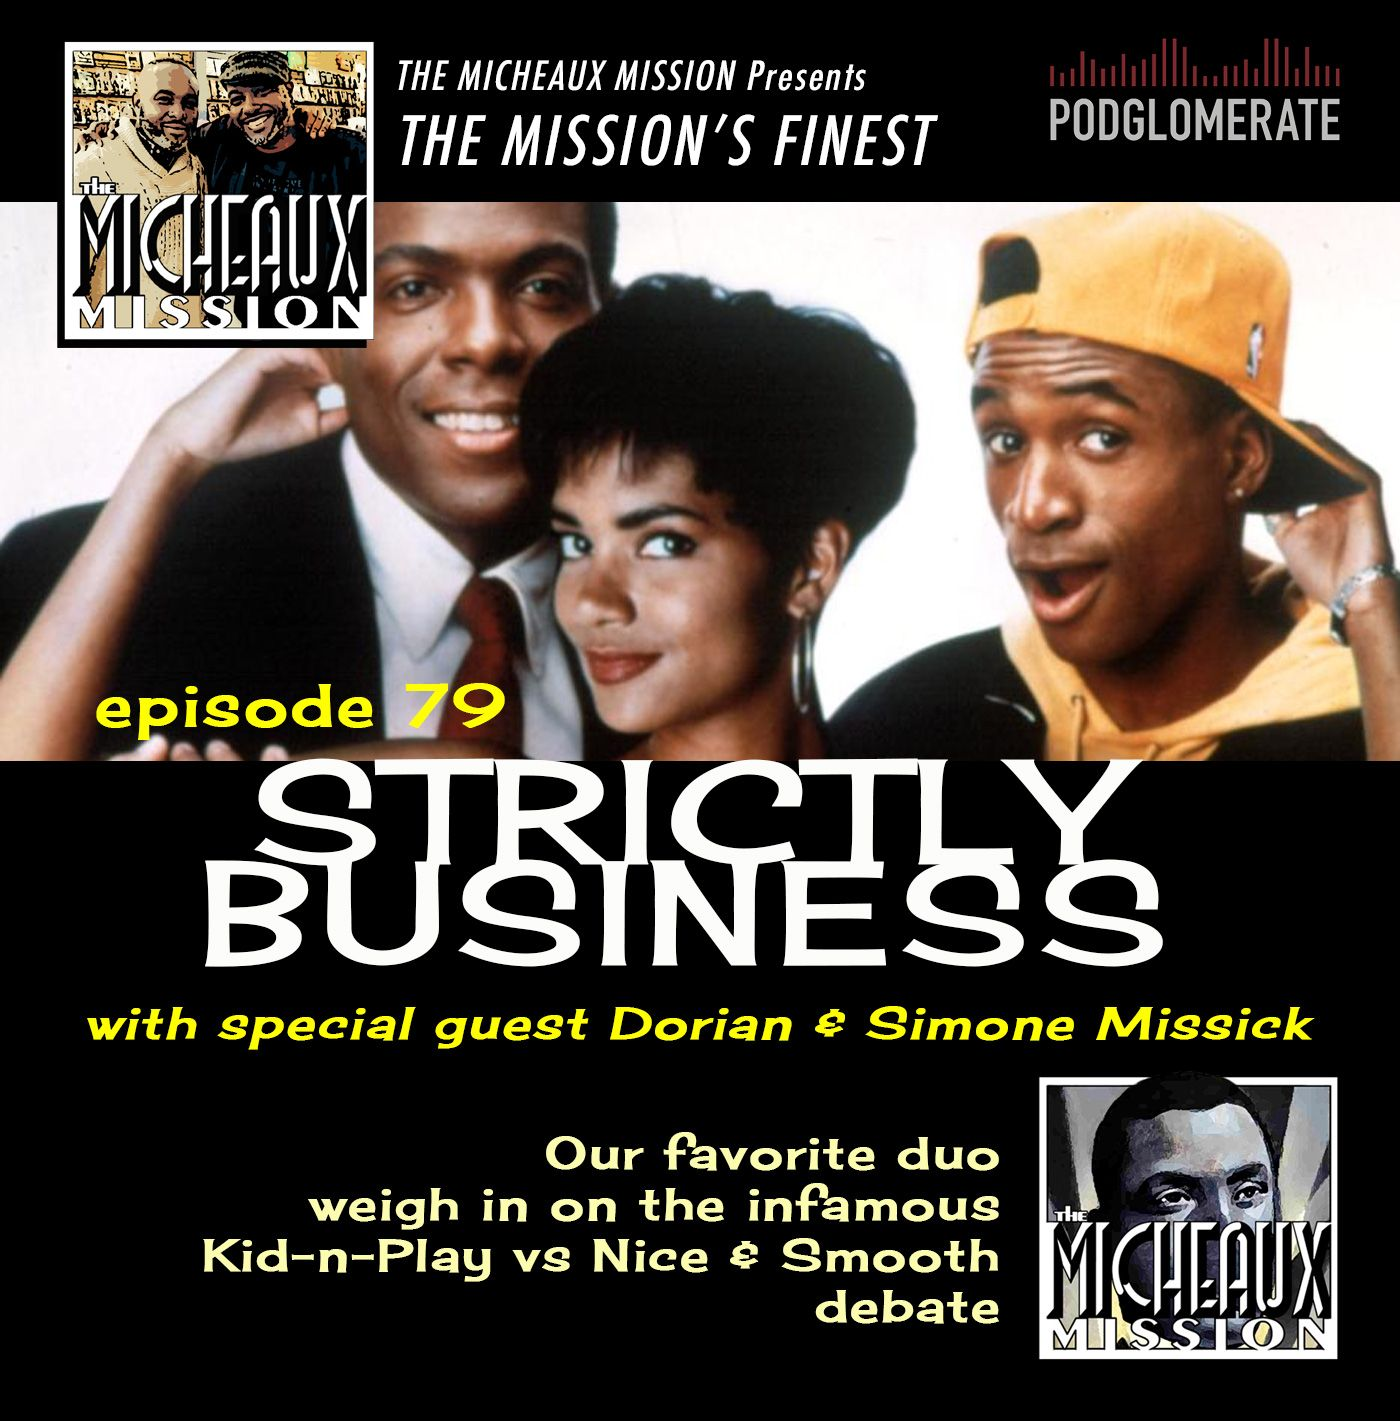 THE MISSION FINEST - Strictly Business (1991) w Dorian & Simone Missick